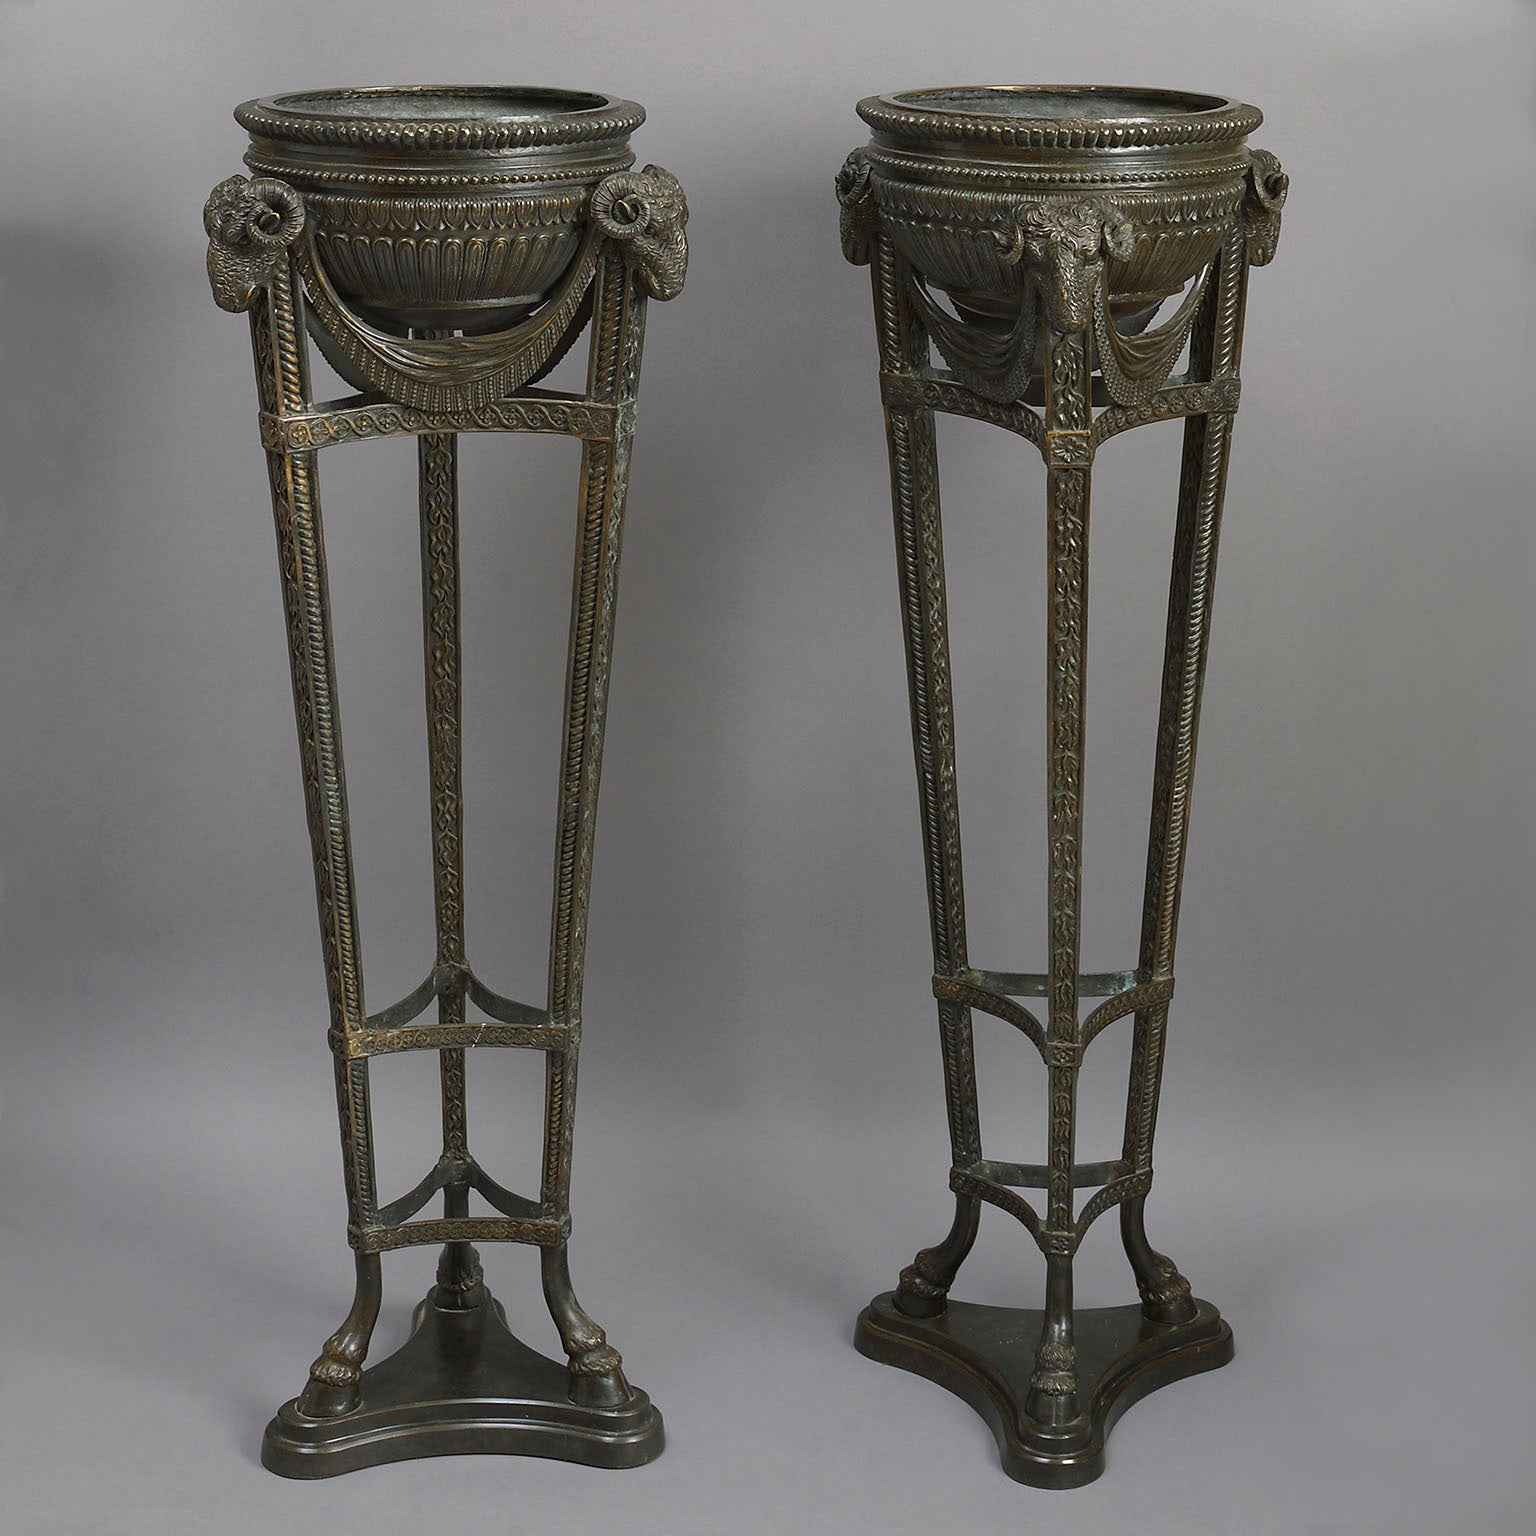 Pair of Neo-Classical Bronze Jardinieres